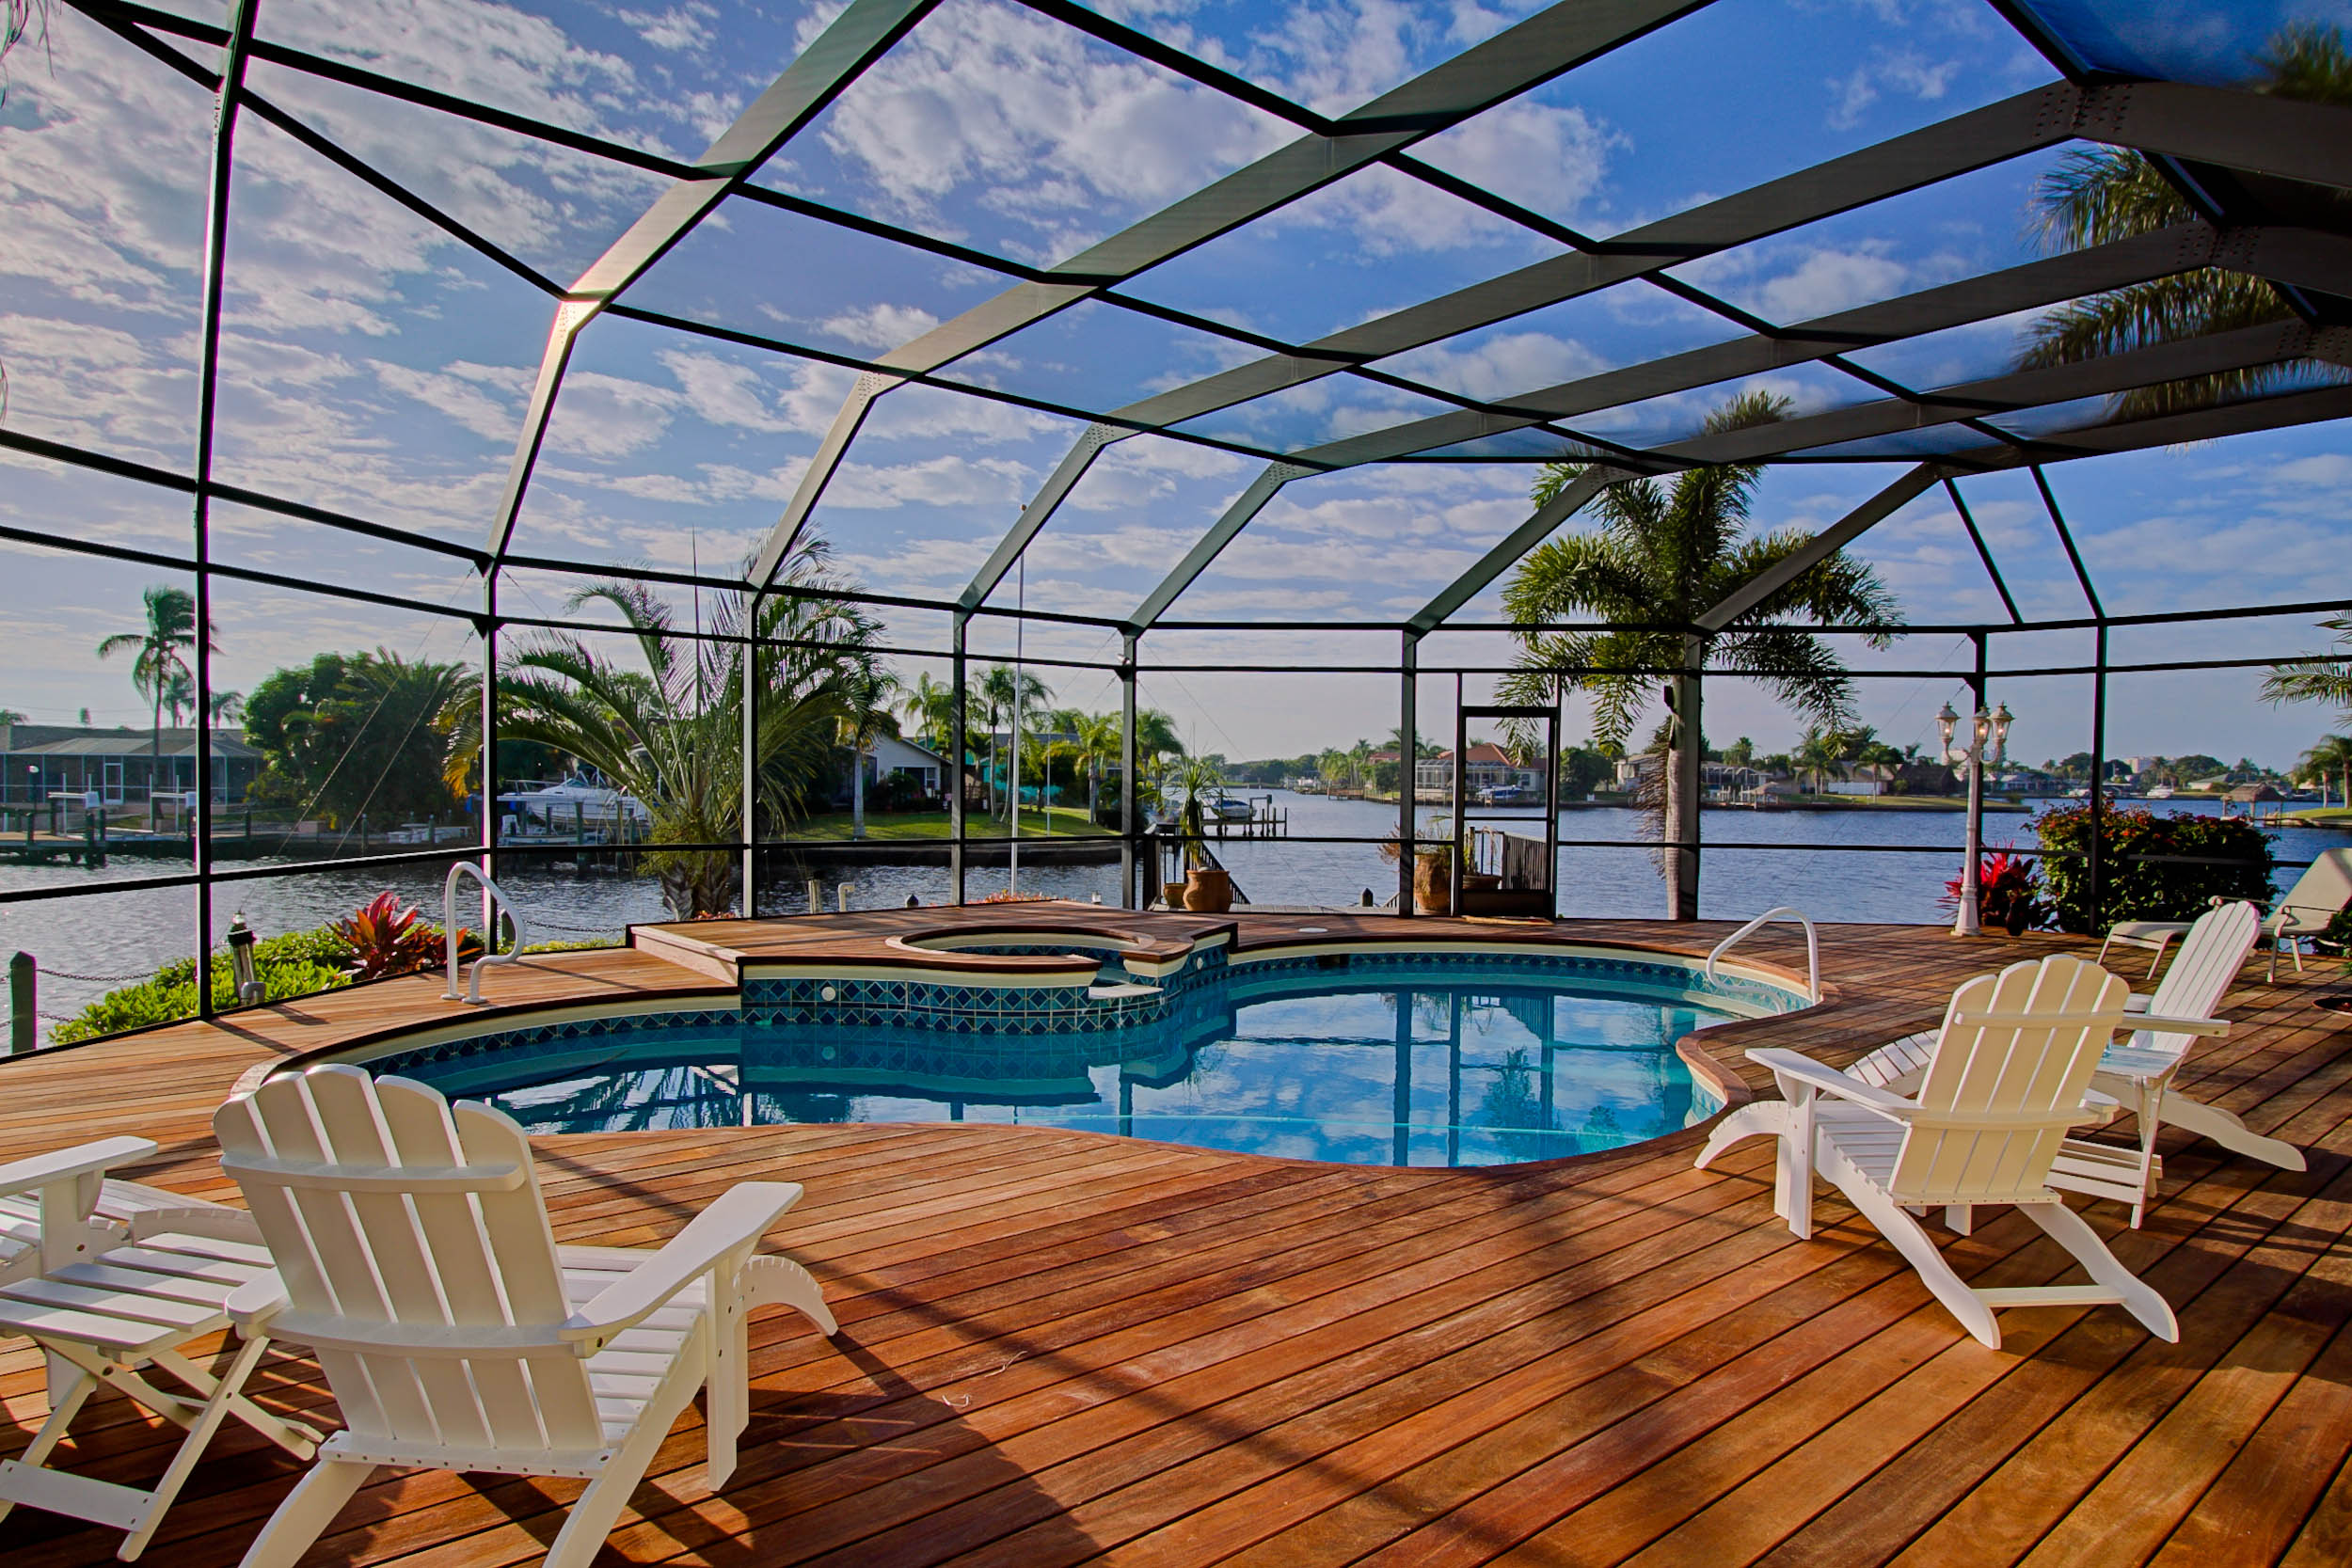 Laguna-Breeze-Pool-Views-Cape-Coral-Florida.jpg